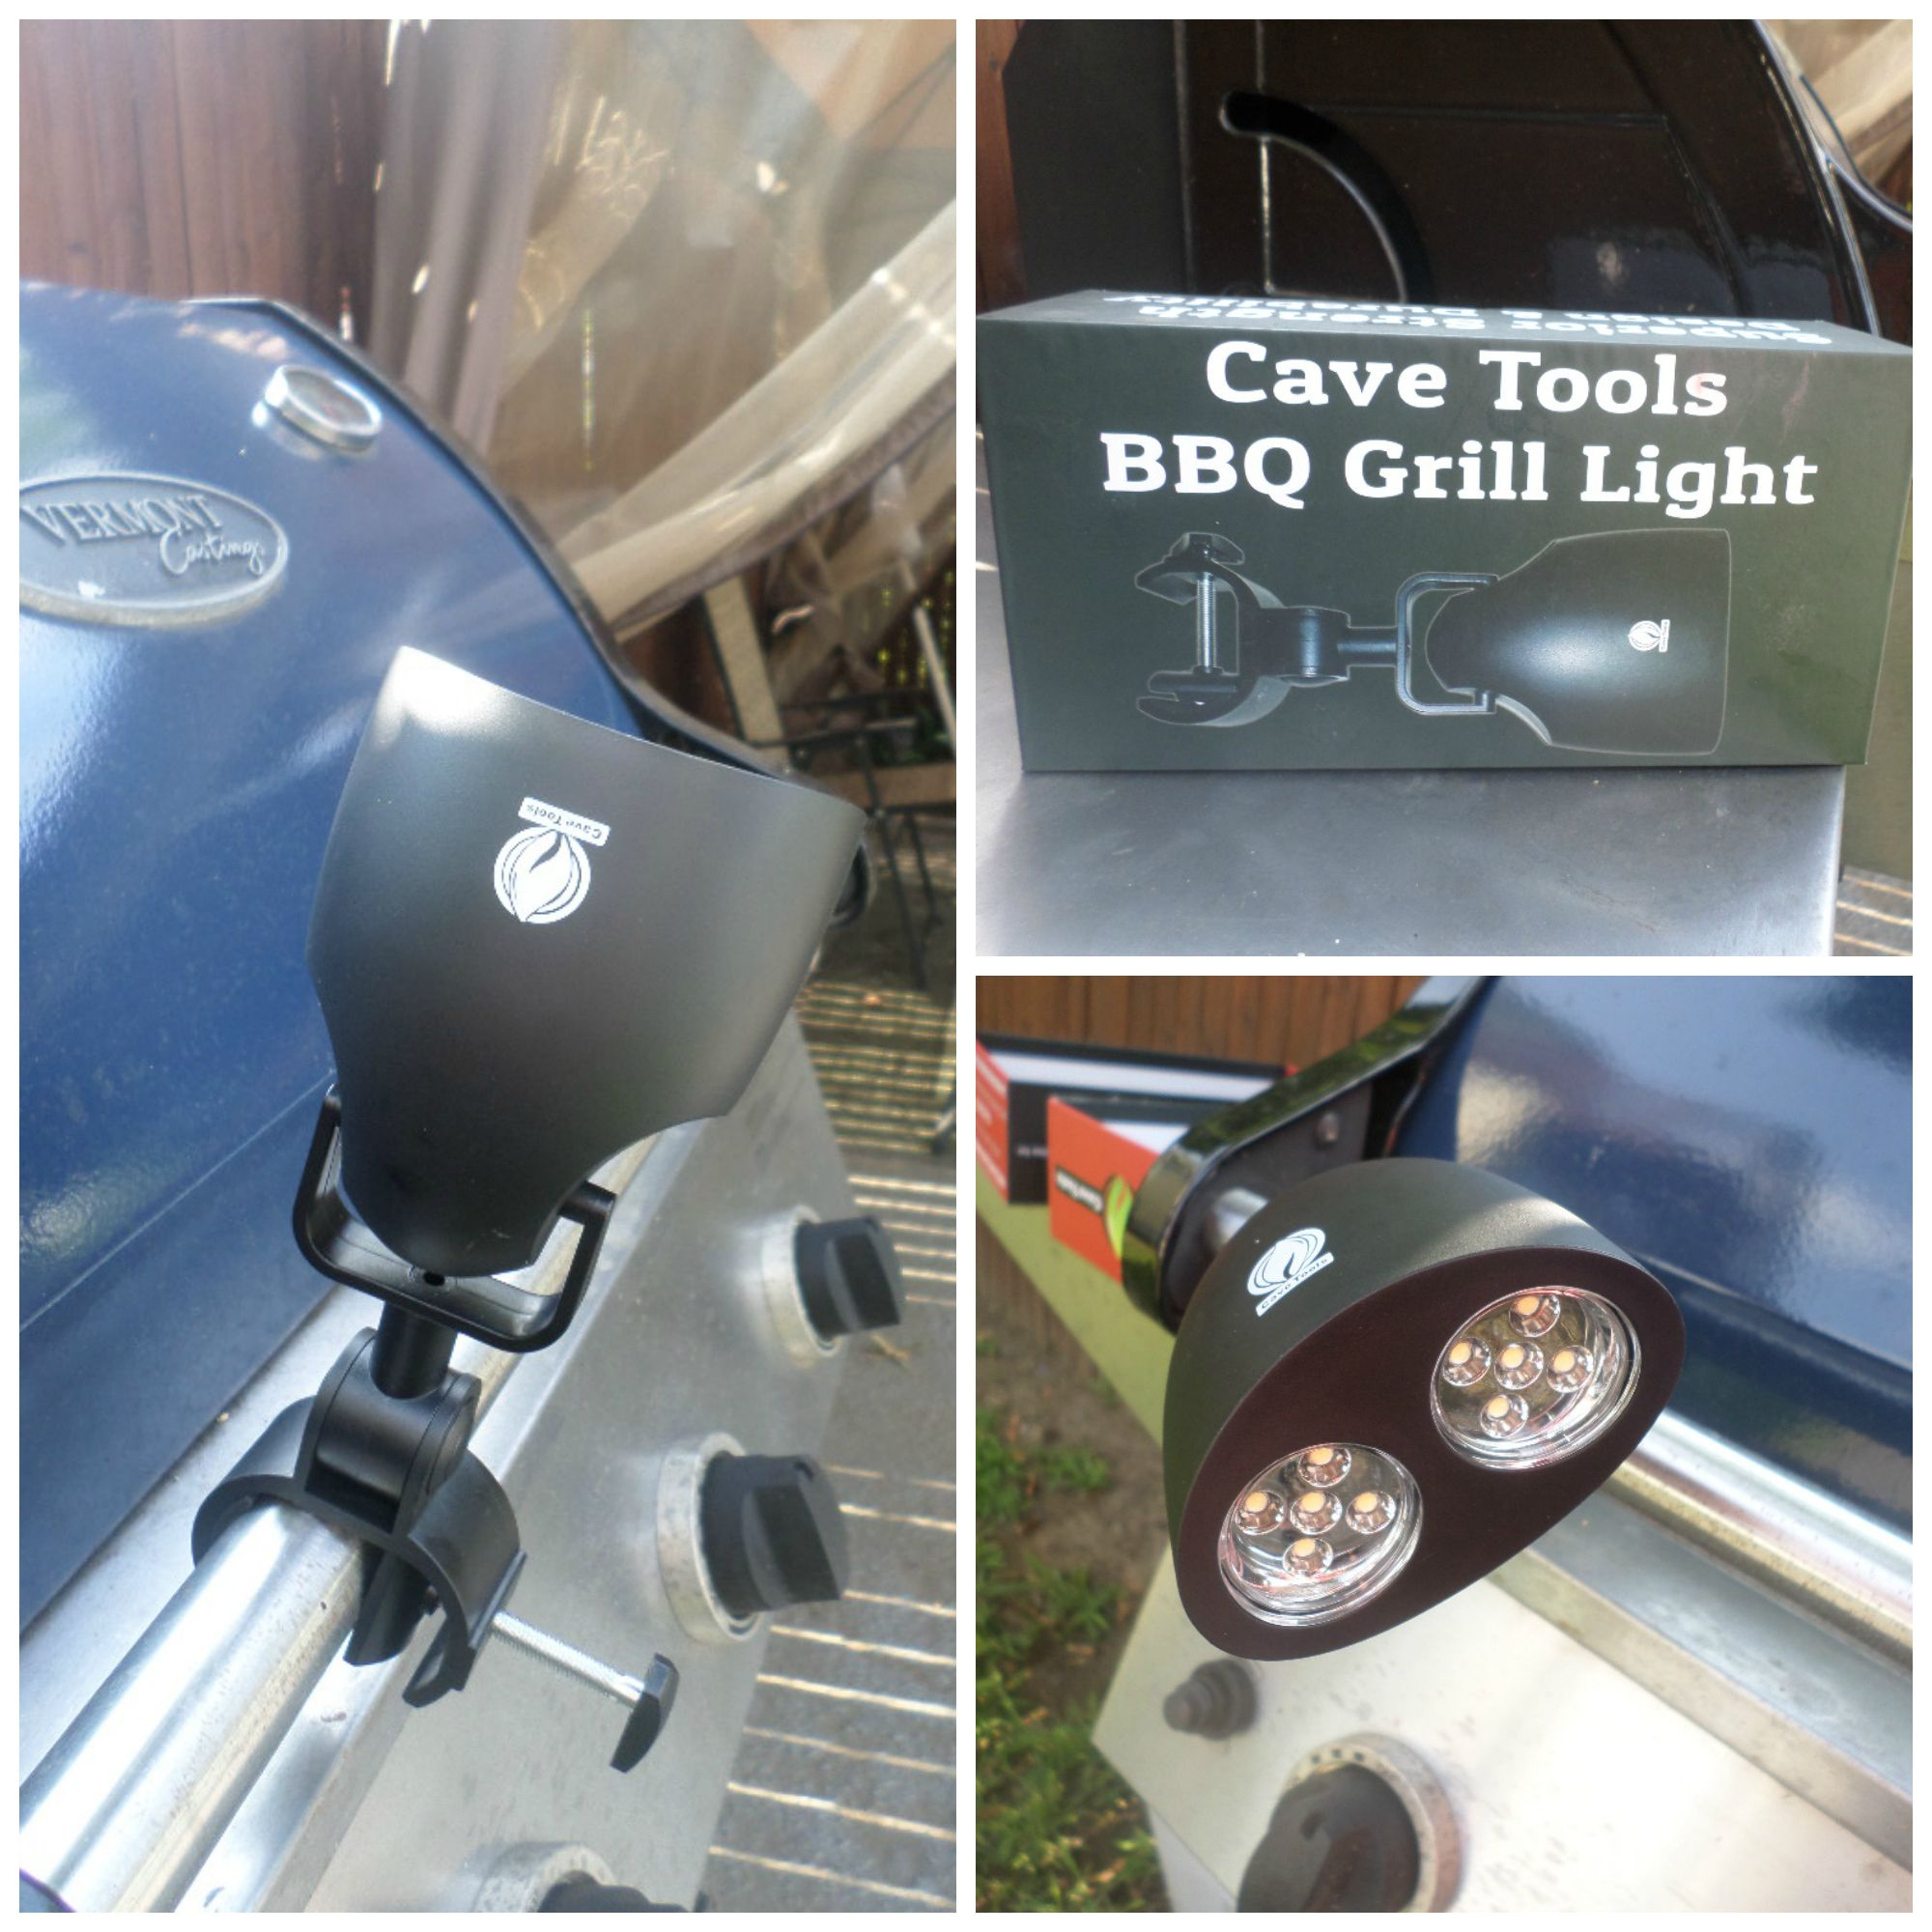 Window grill design ideas  cave tools get the cave tools best bbq grill light here